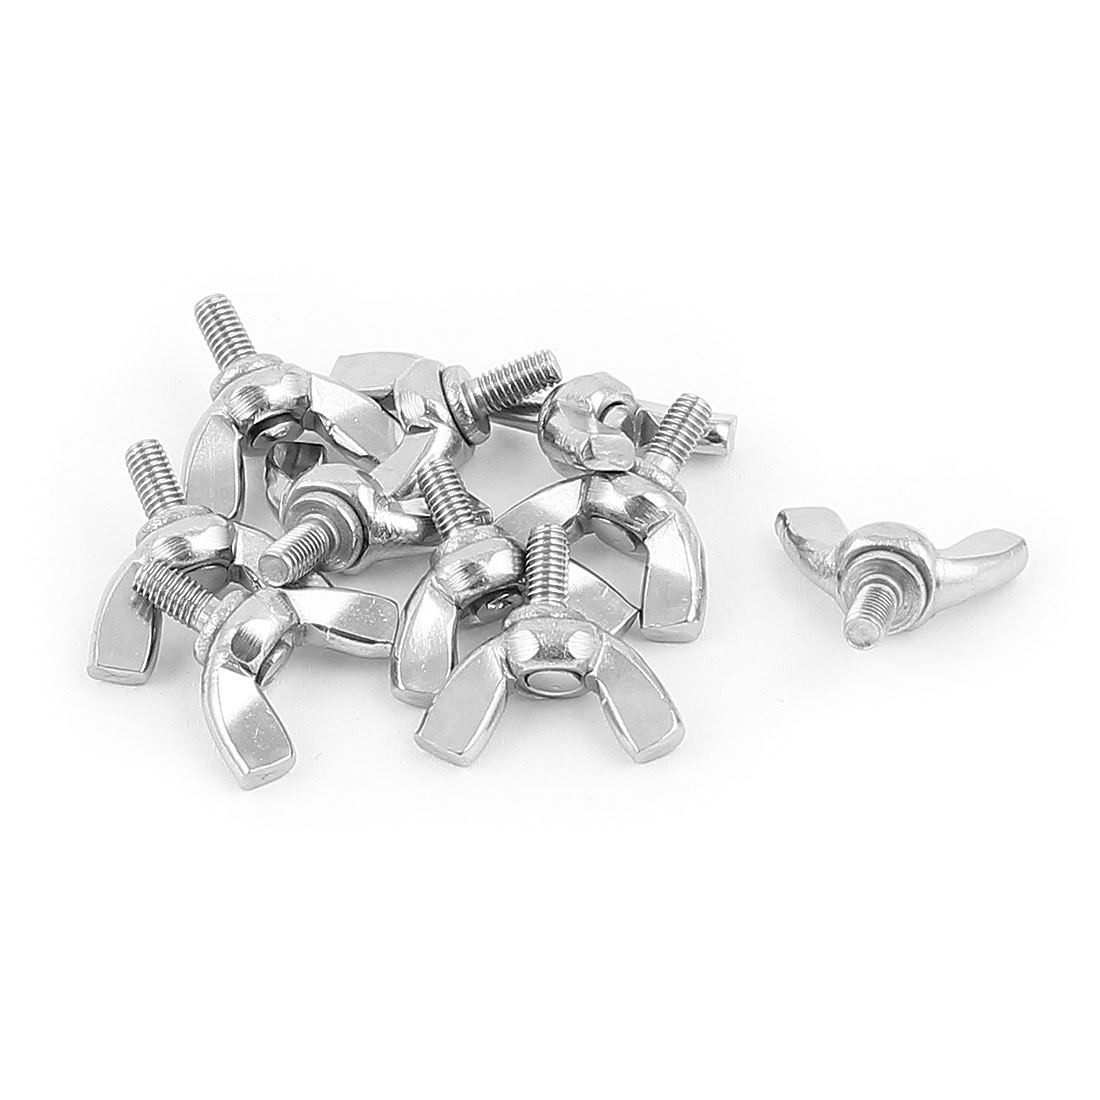 10pcs 3mm x 6mm 304 Stainless Steel 20mm Width Wing Head Screw Bolts